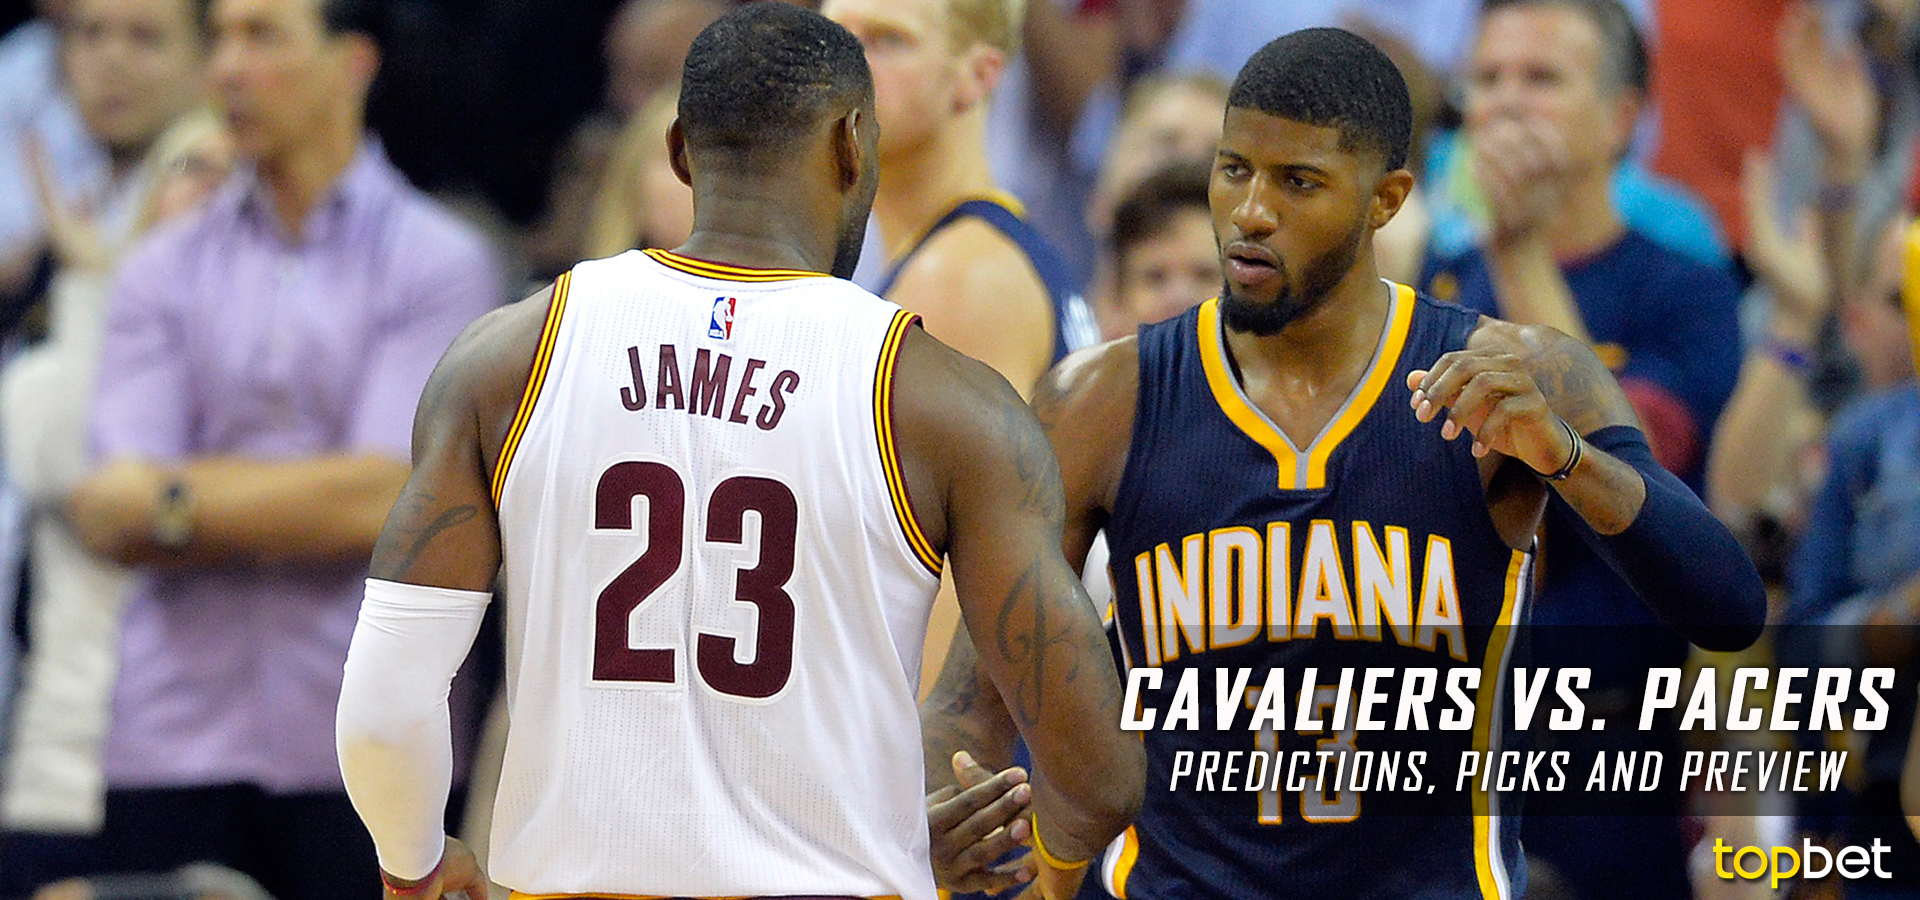 pacers vs cavaliers - photo #11